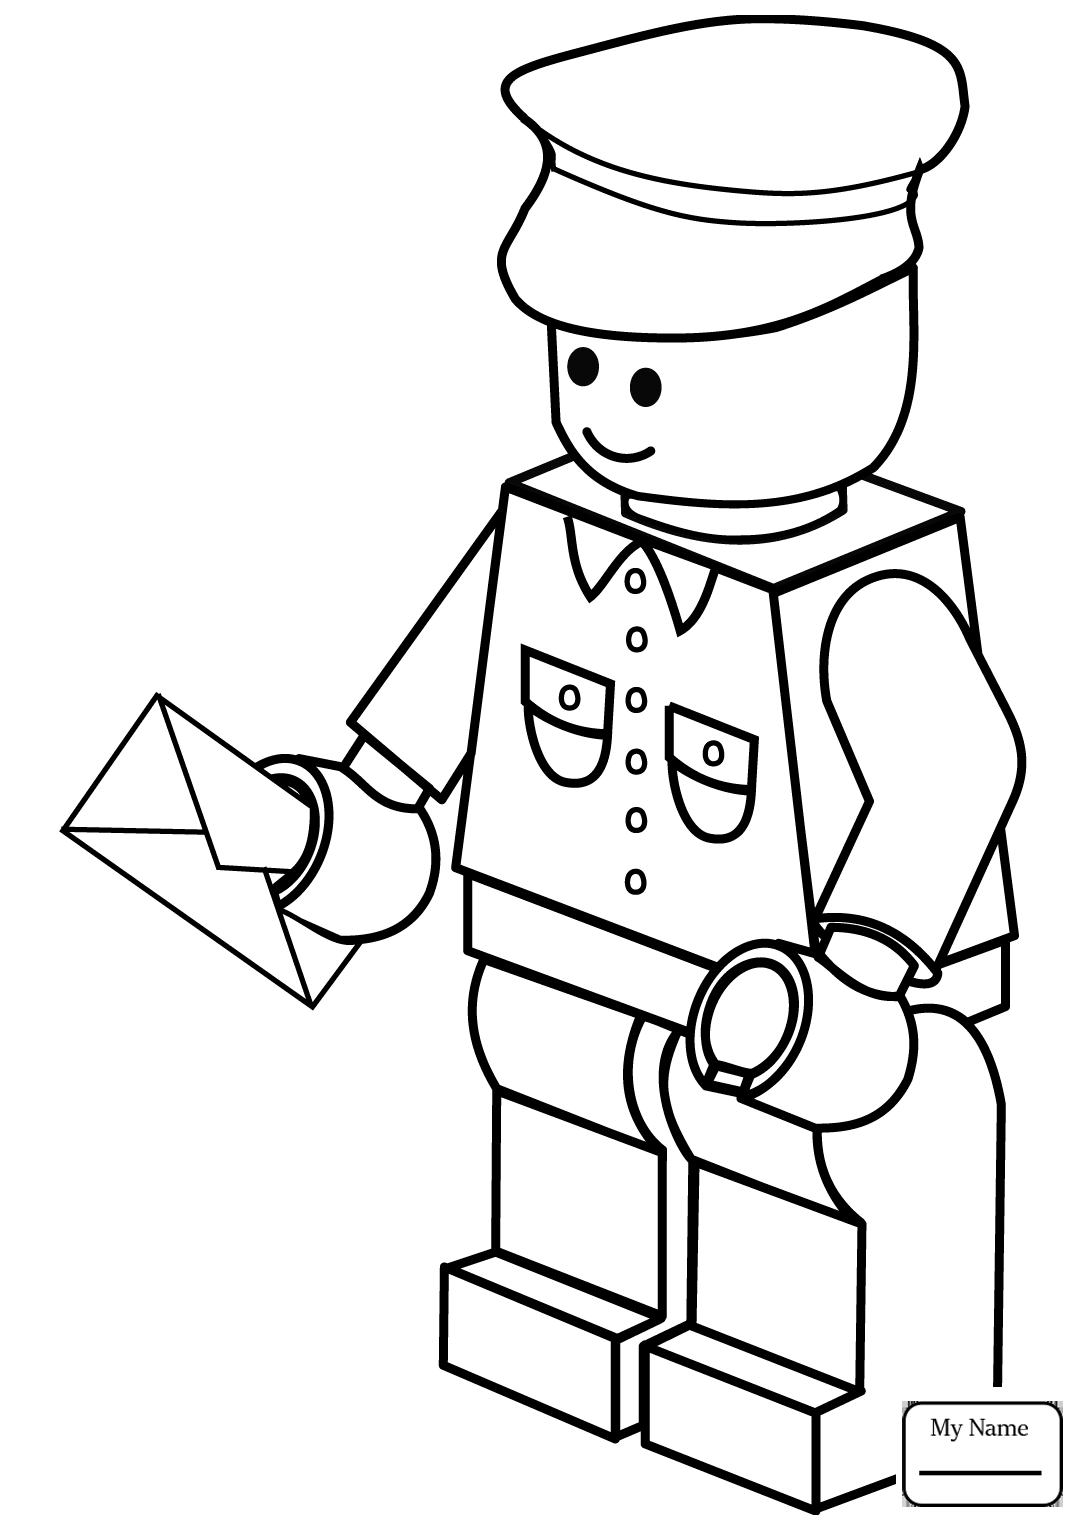 Lego Man Drawing at GetDrawings